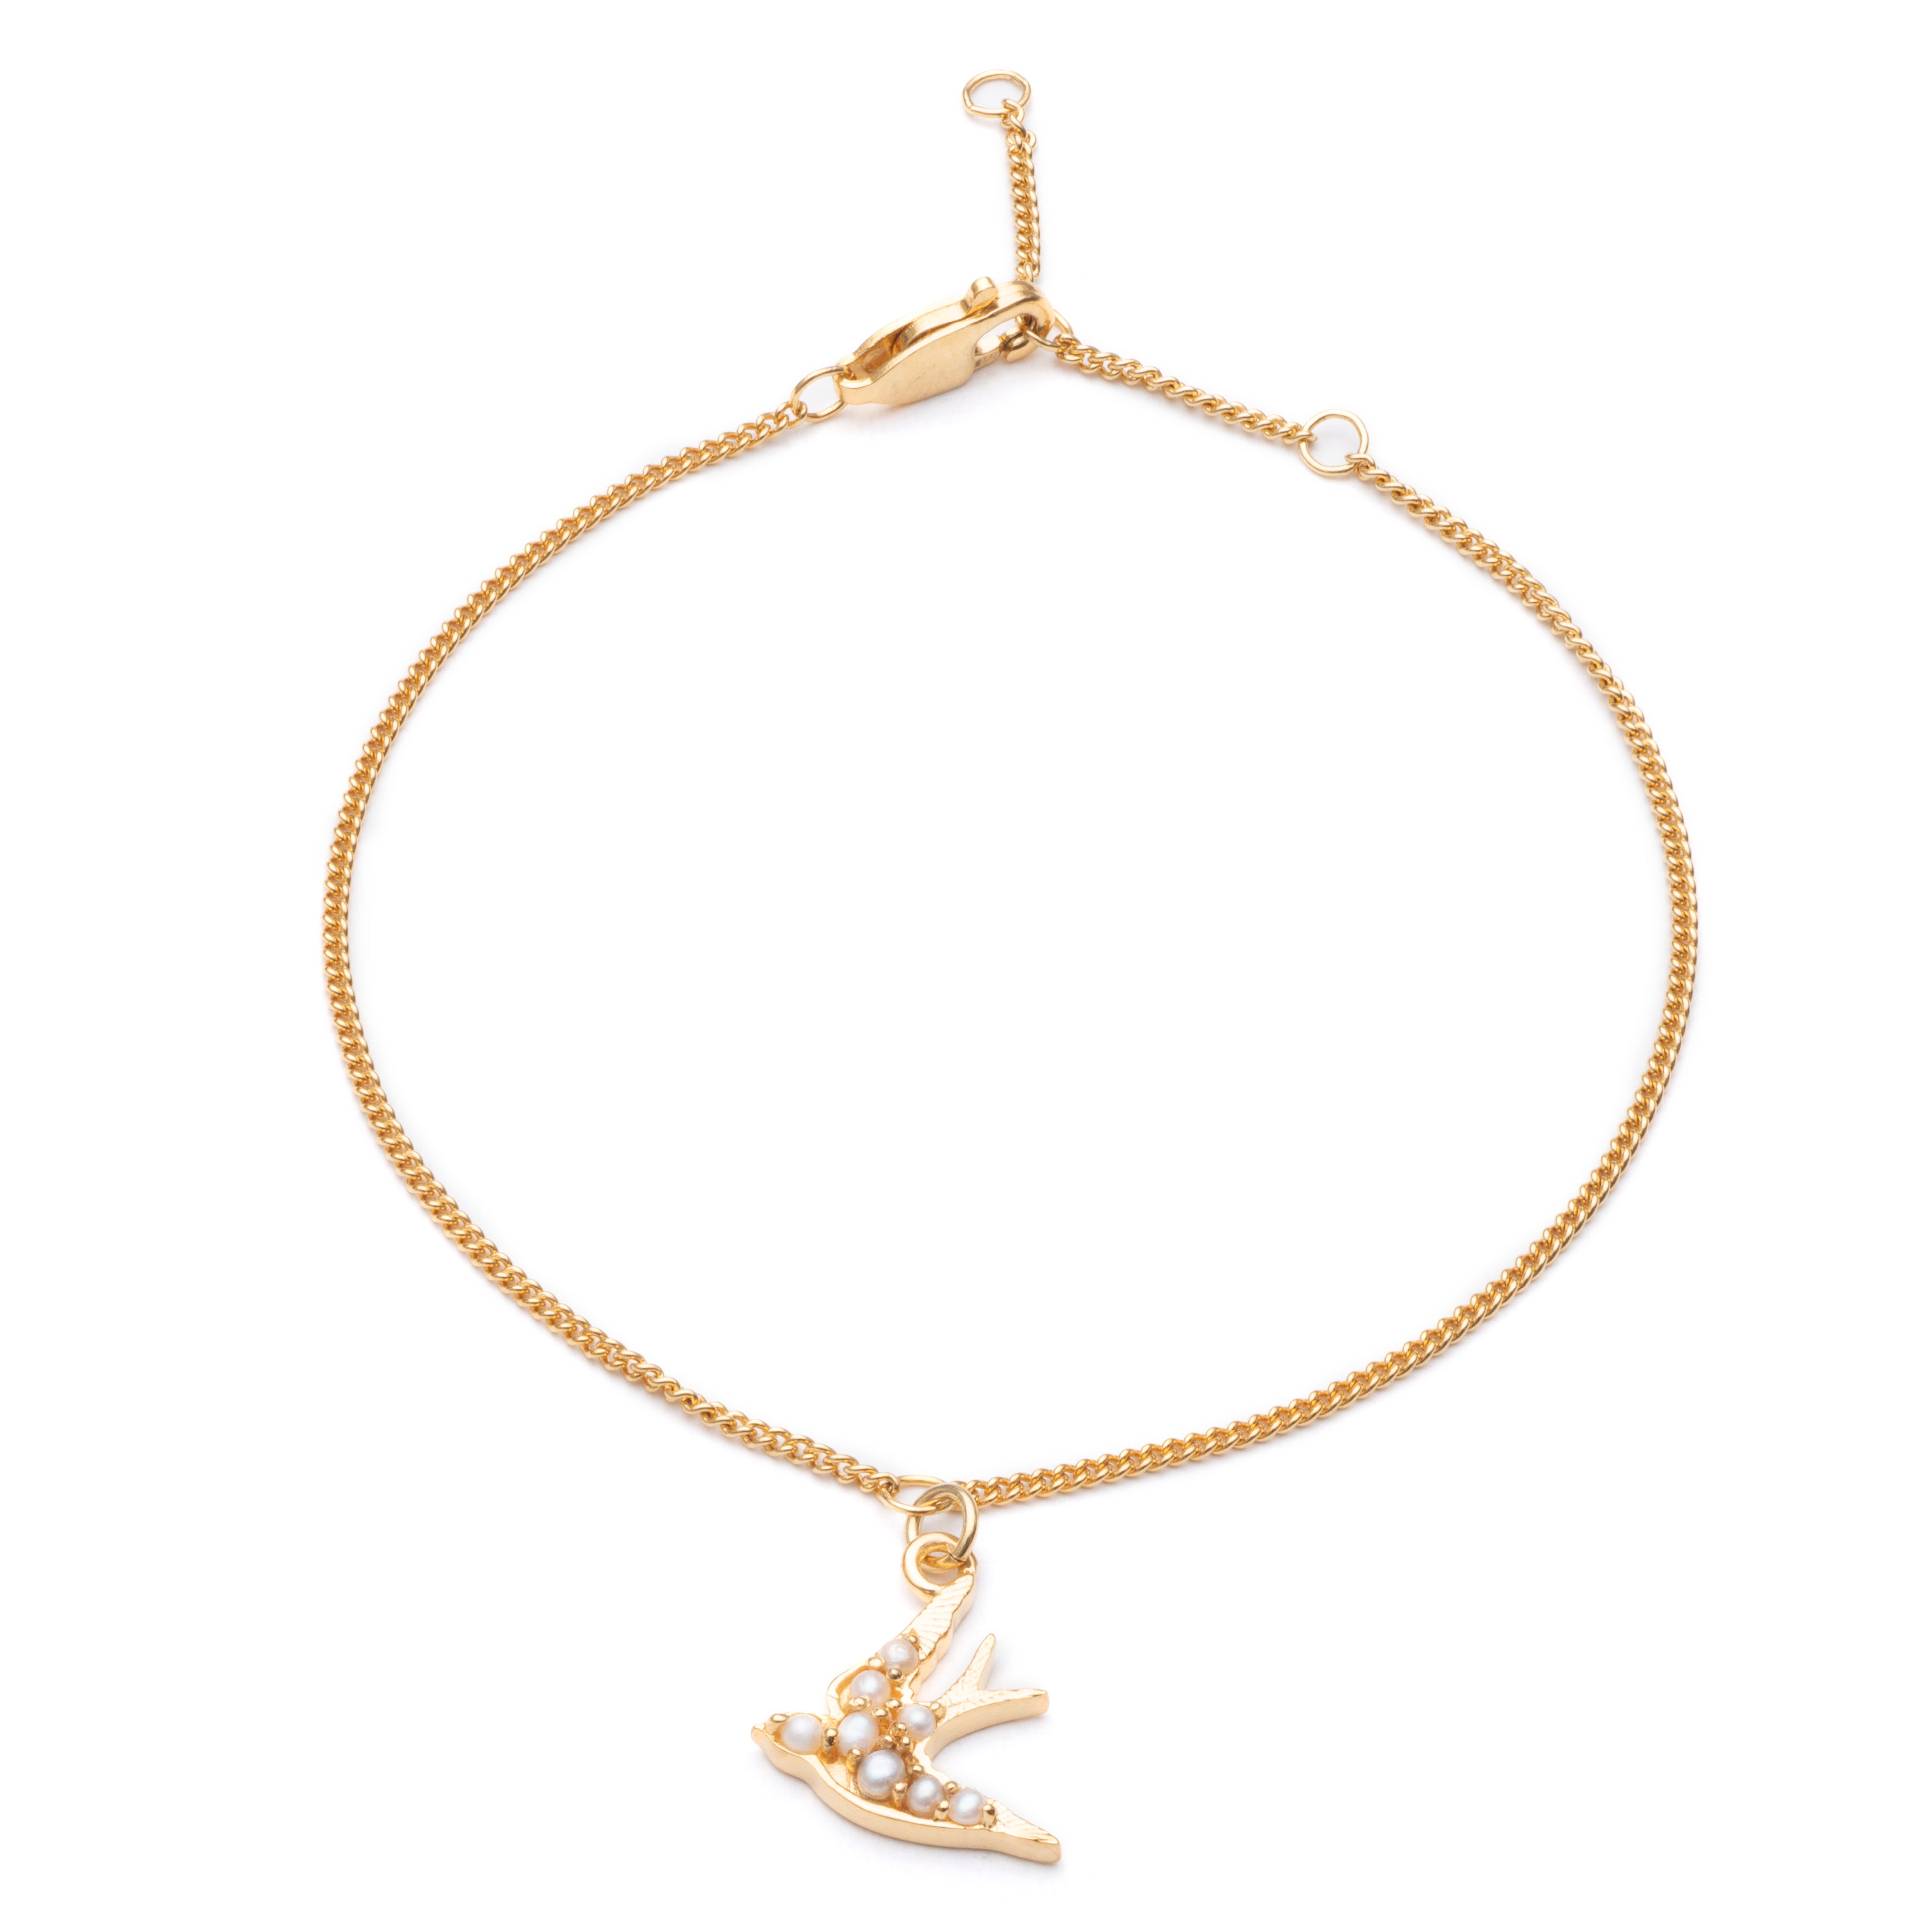 Mother of Daughters swallow charm chain bracelet gold Rachel Jackson London